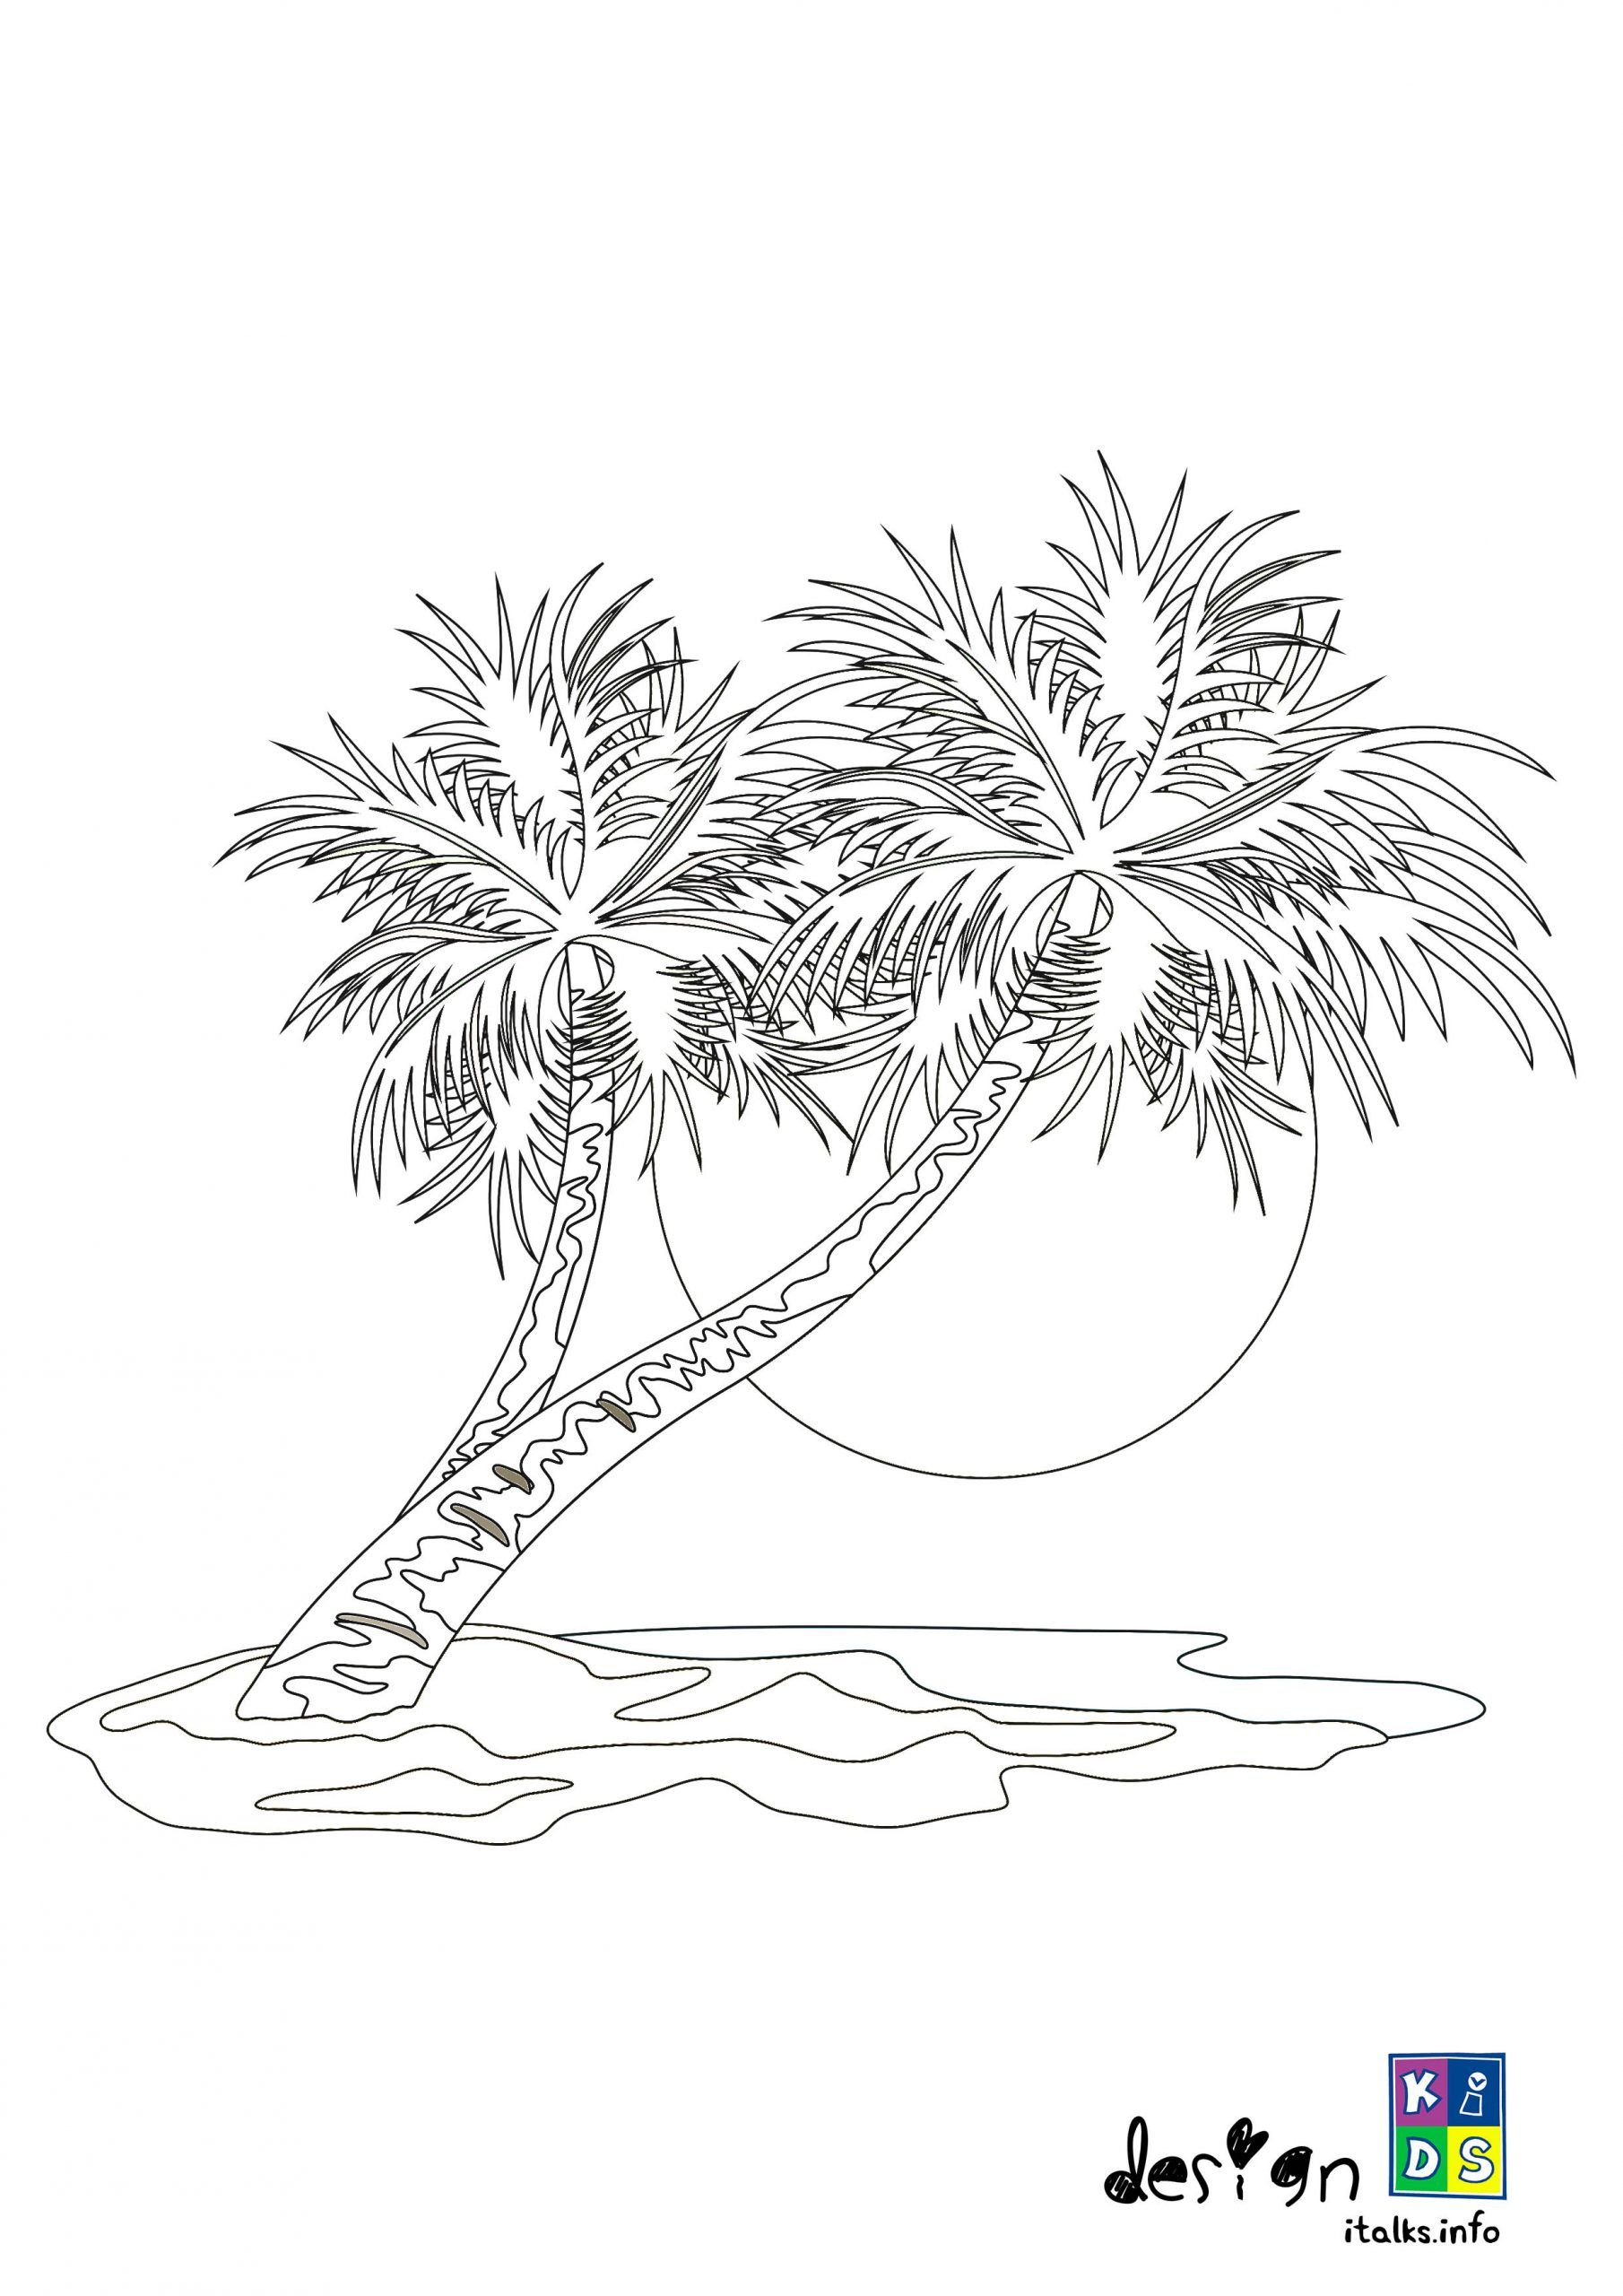 Palm Tree With Sunset Coloring Page In 2020 Coloring Pages Sunset Colors Palm Trees